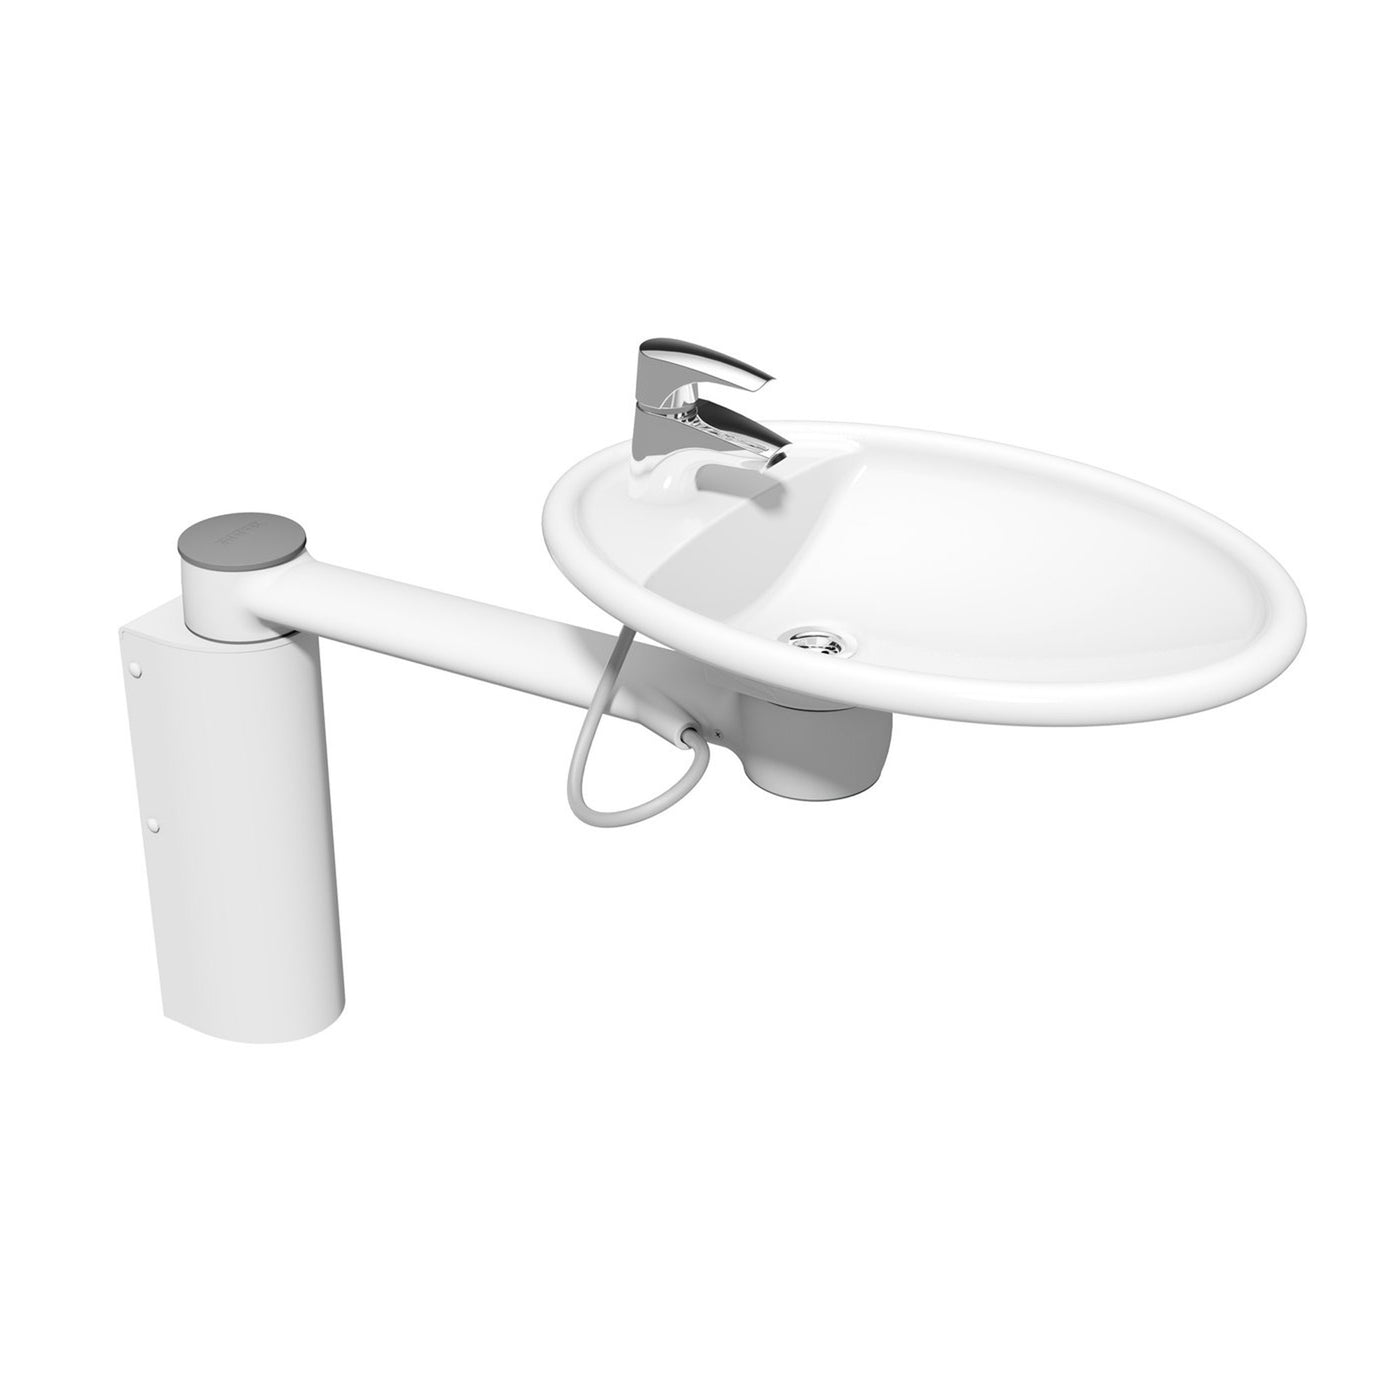 Ropox Missisippi Swing Wash Basin